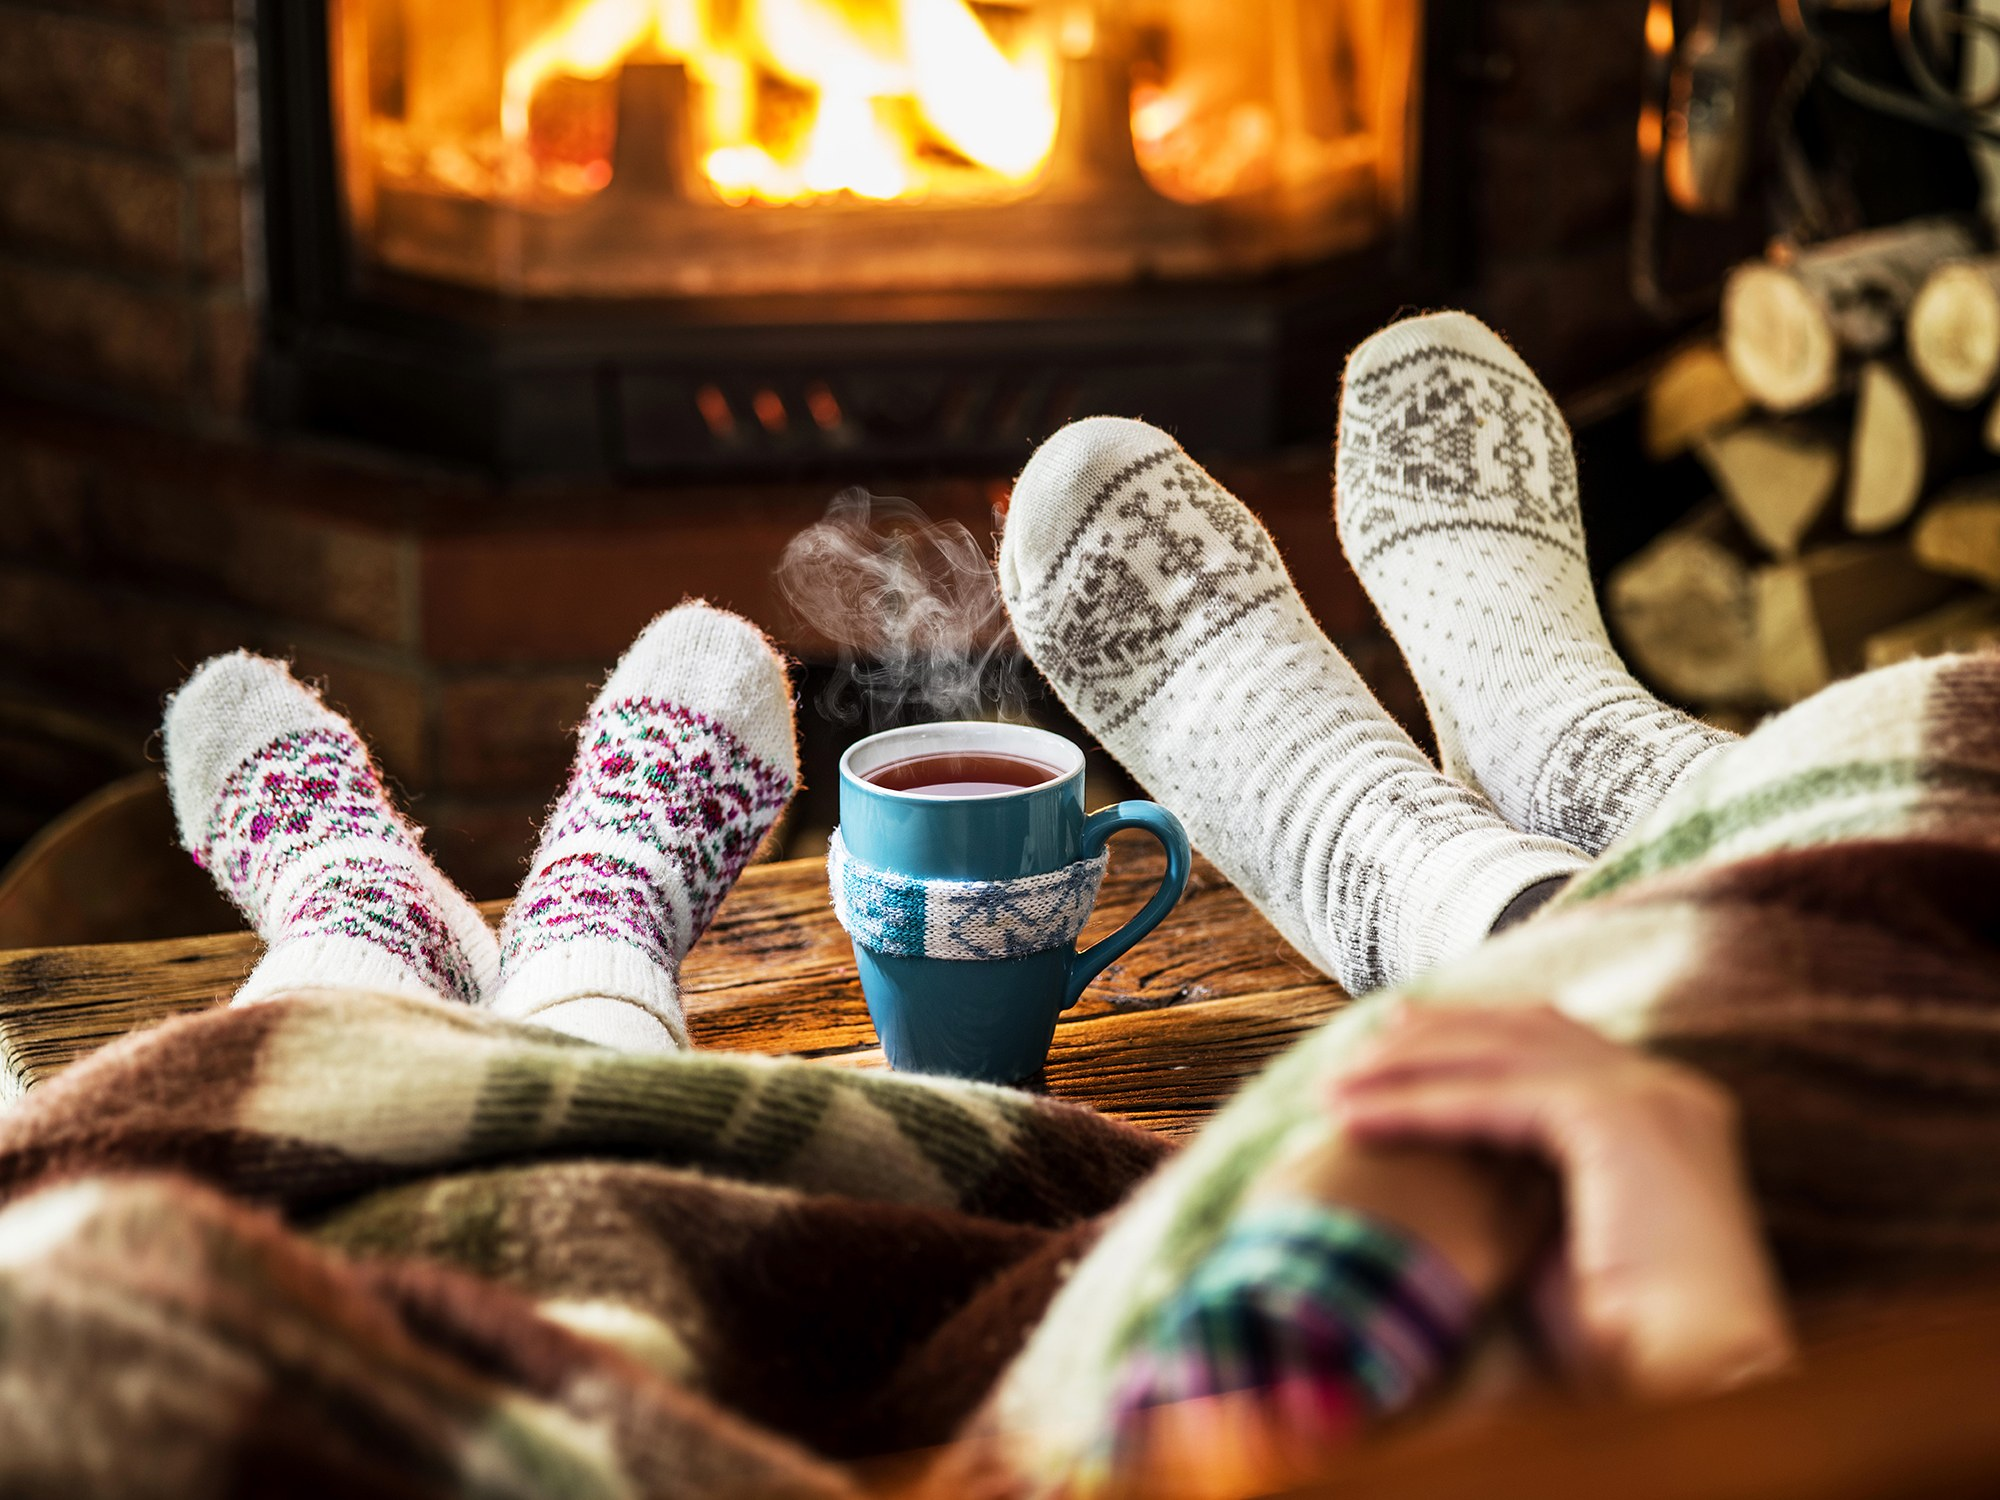 hygge people getting cozy